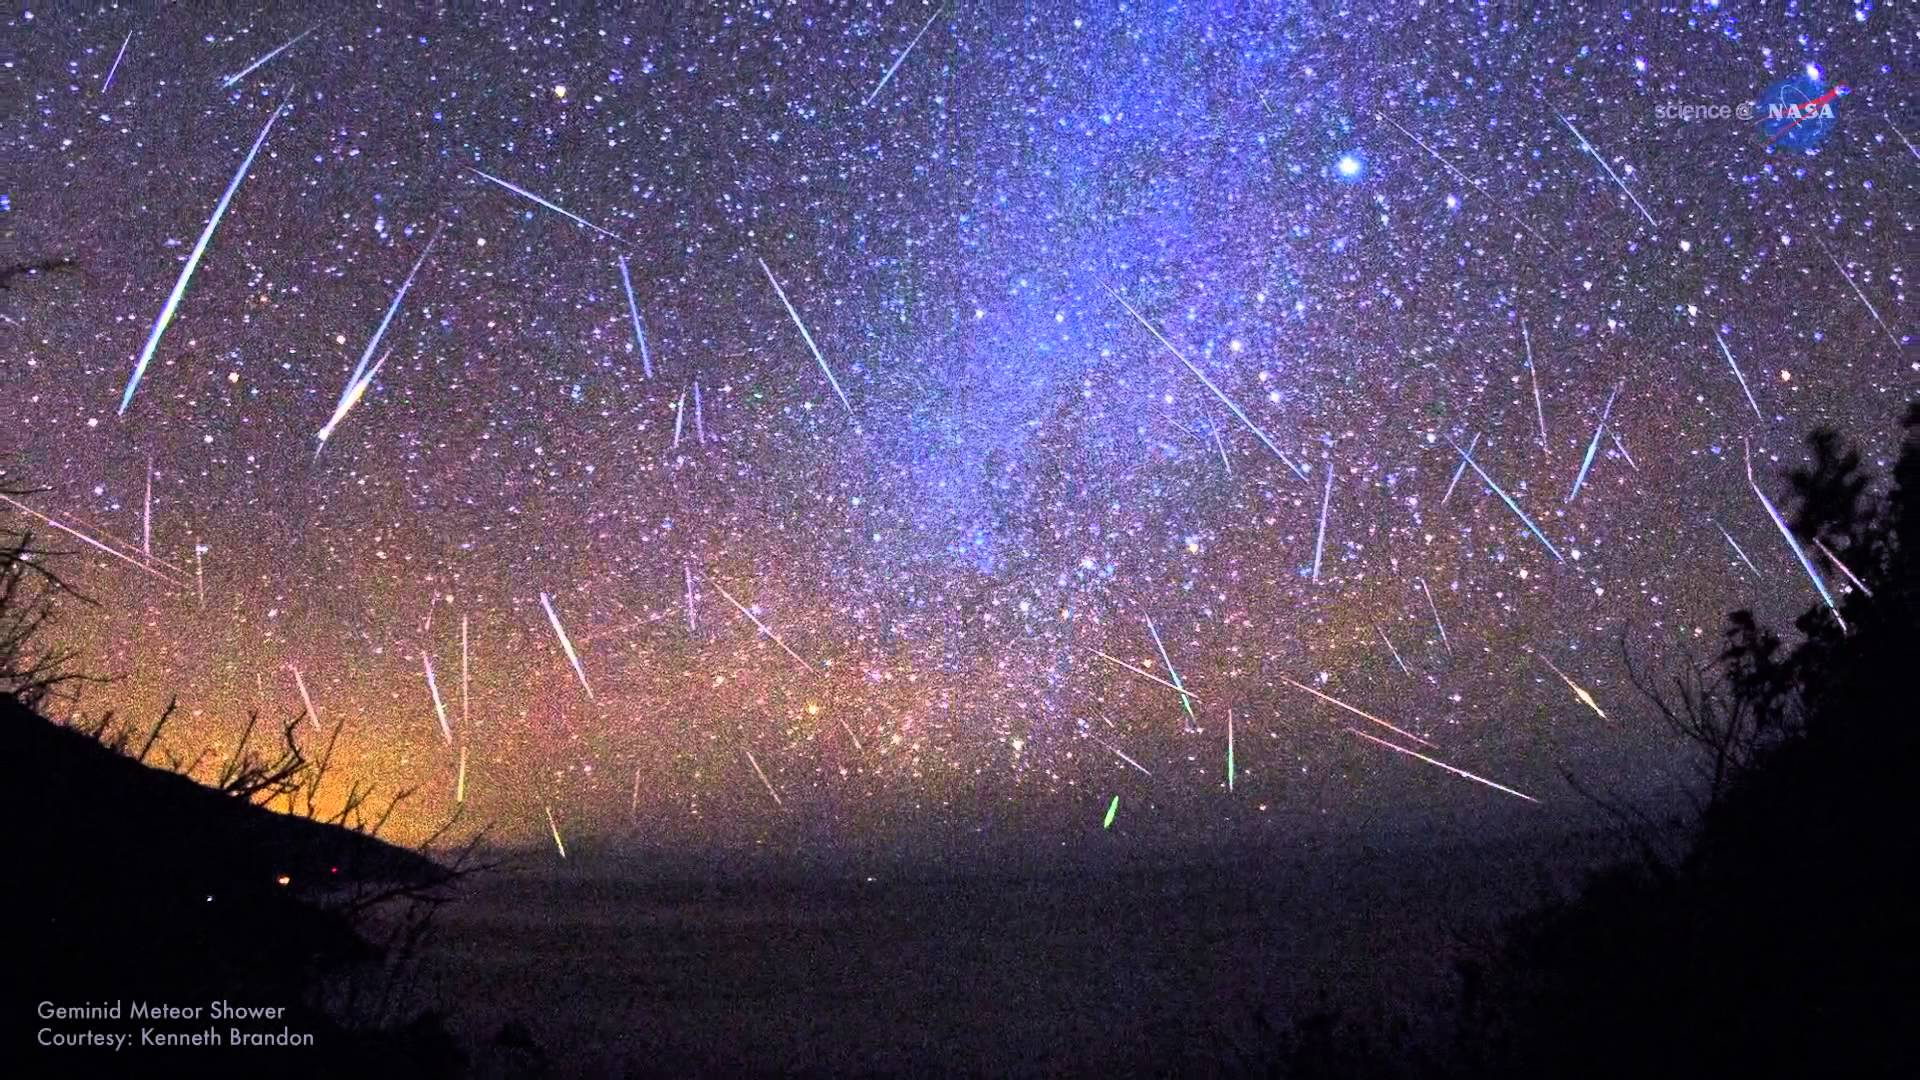 Free Meteor Shower Wallpapers #V1L8P41 | WallpapersExpert.com